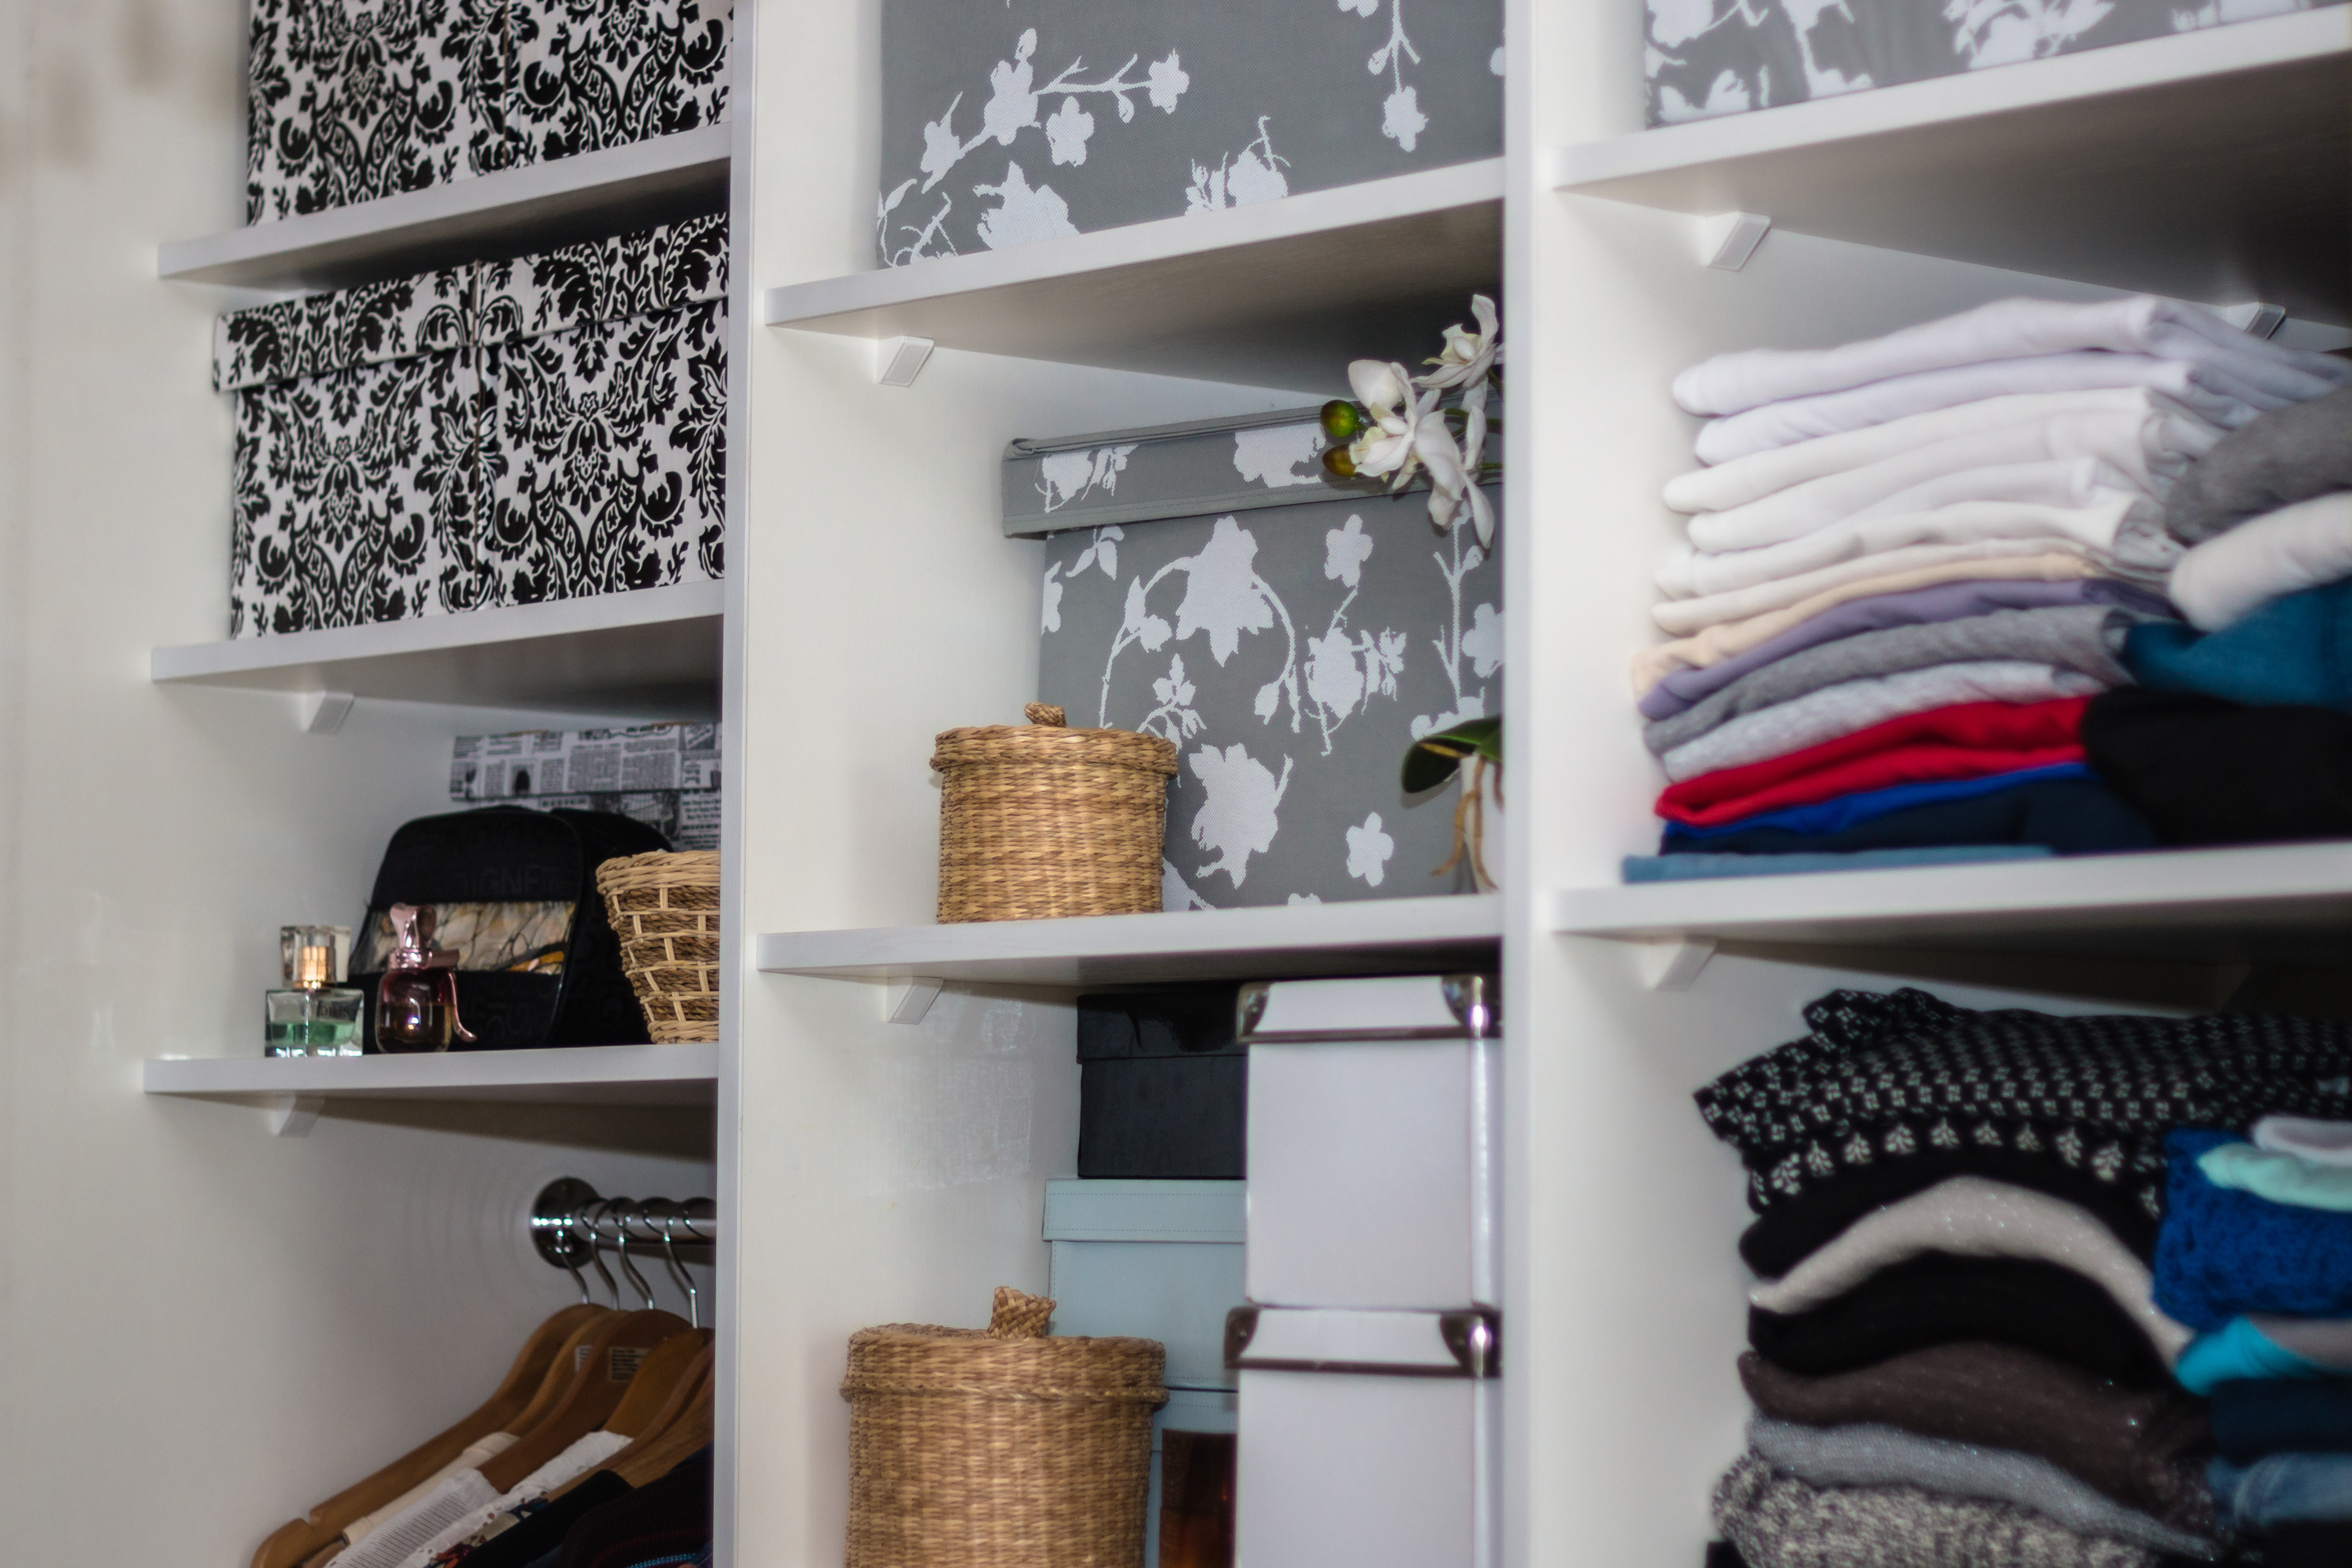 A smartly organized closet with shelves and a portion for hanging clothes.